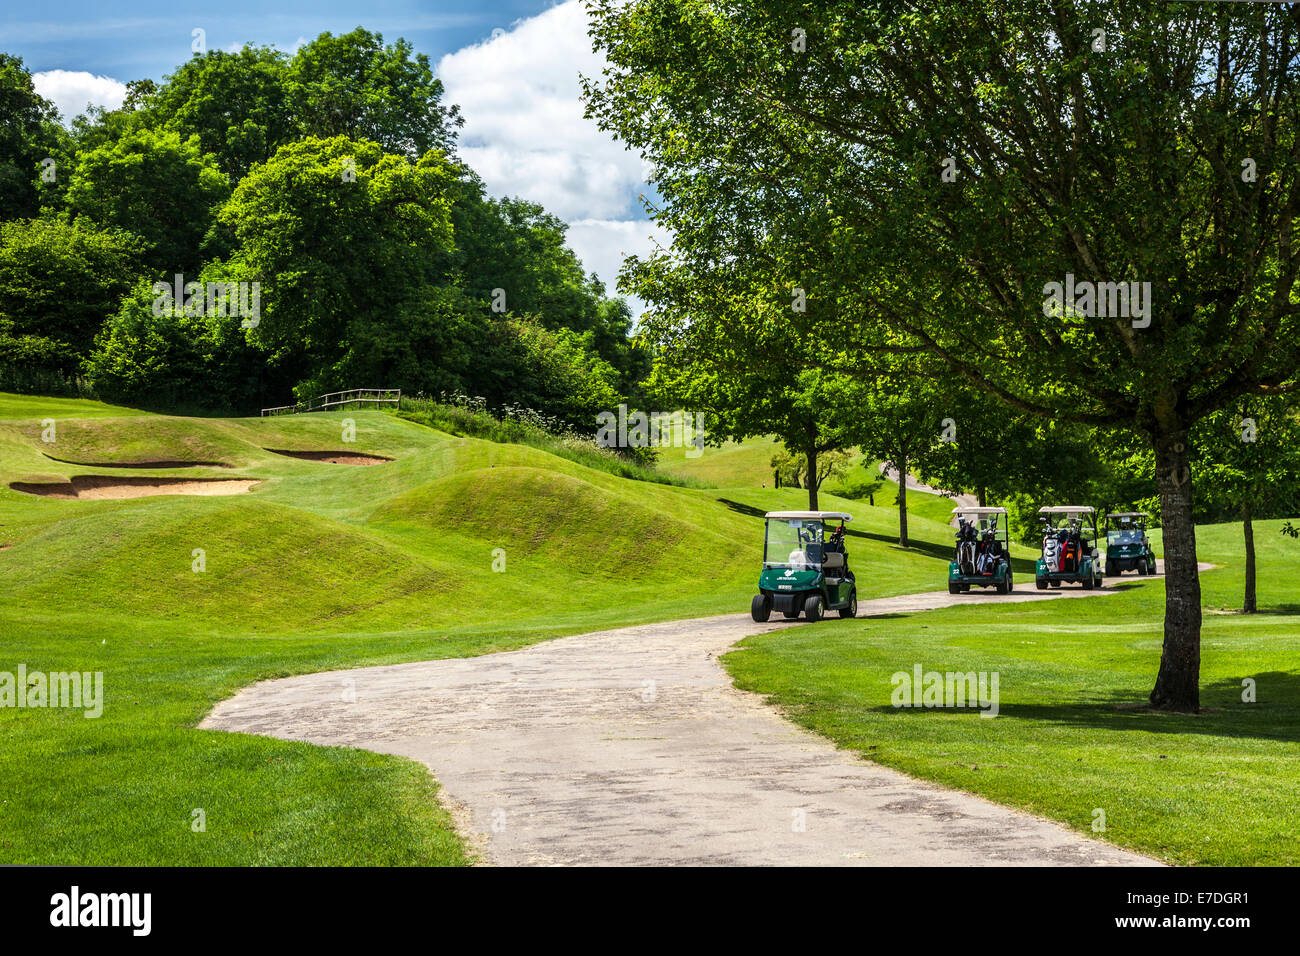 Four electric golf buggies or carts by some bunkers on a golf course. - Stock Image